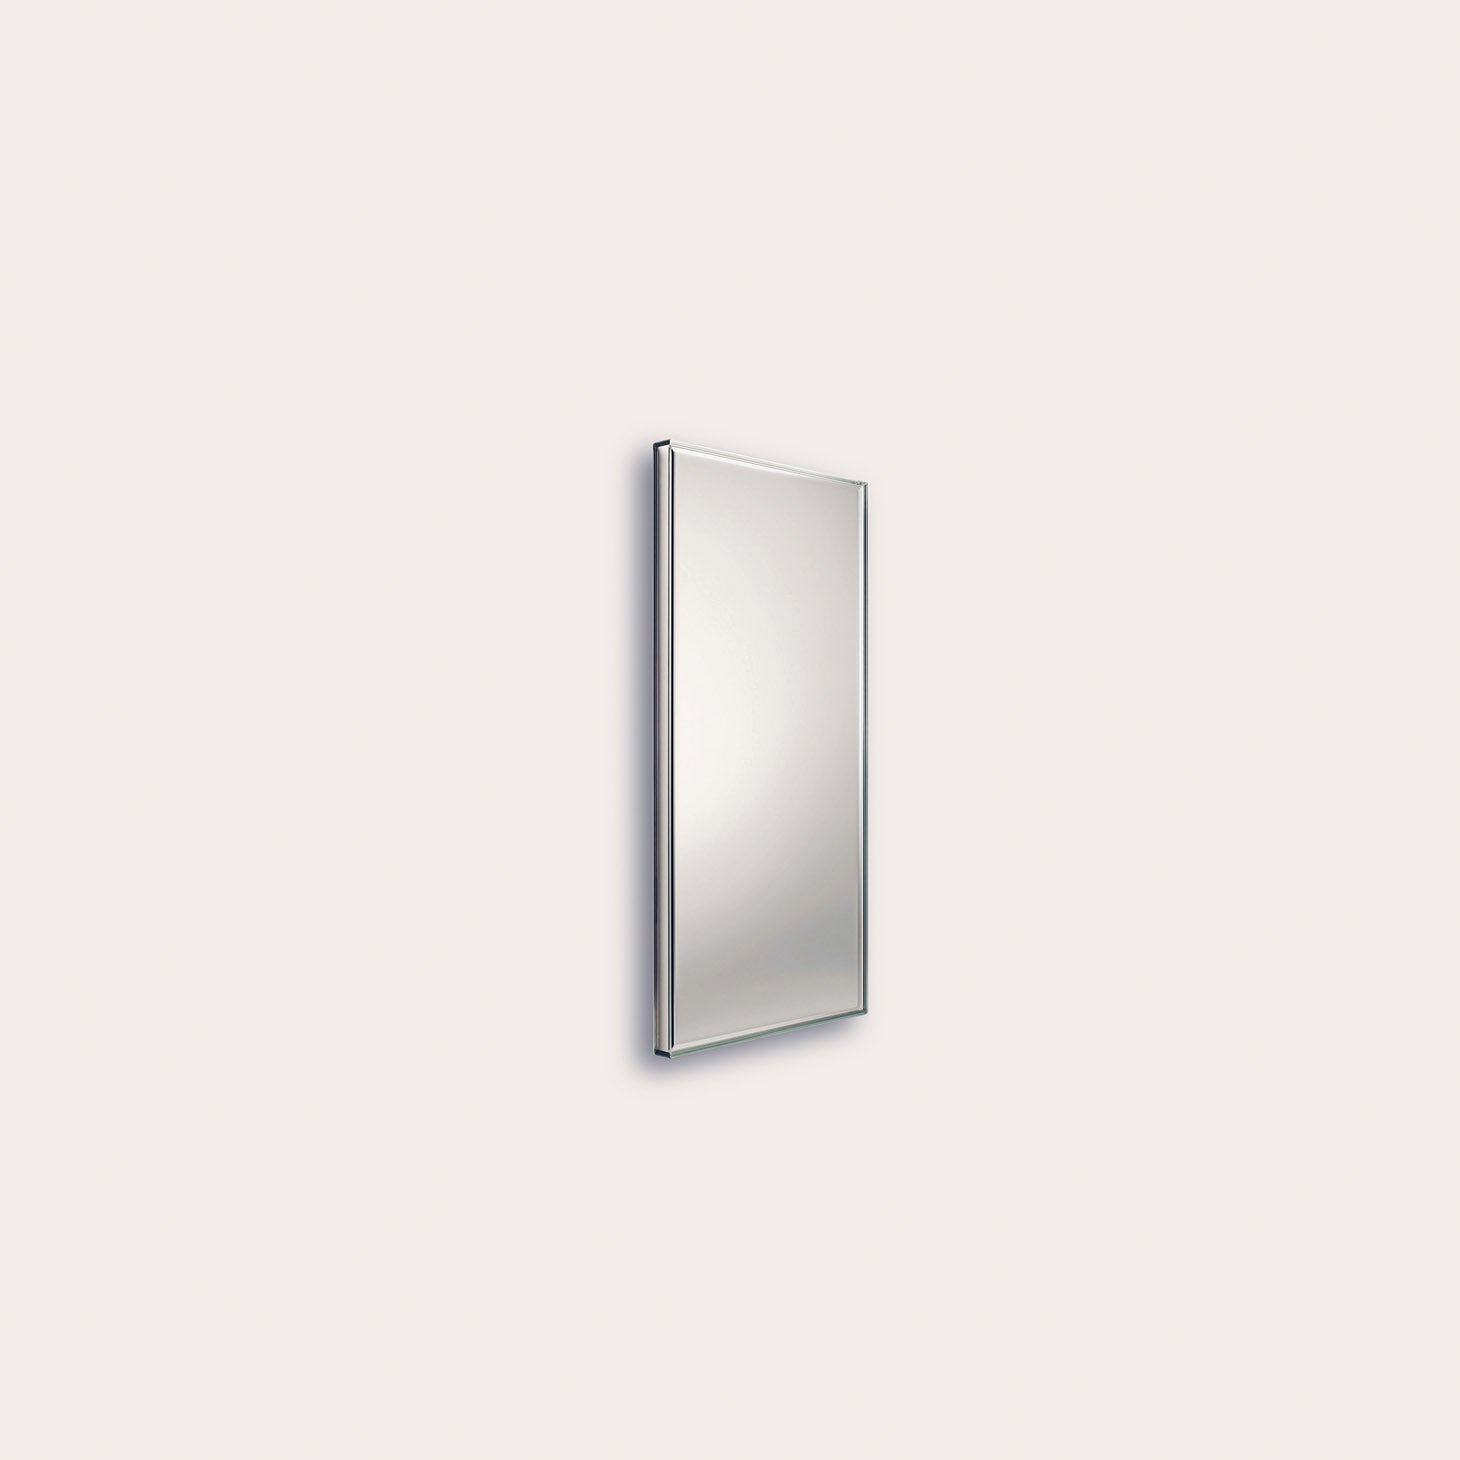 Prism Mirror Accessories Piero Lissoni Designer Furniture Sku: 288-100-10076